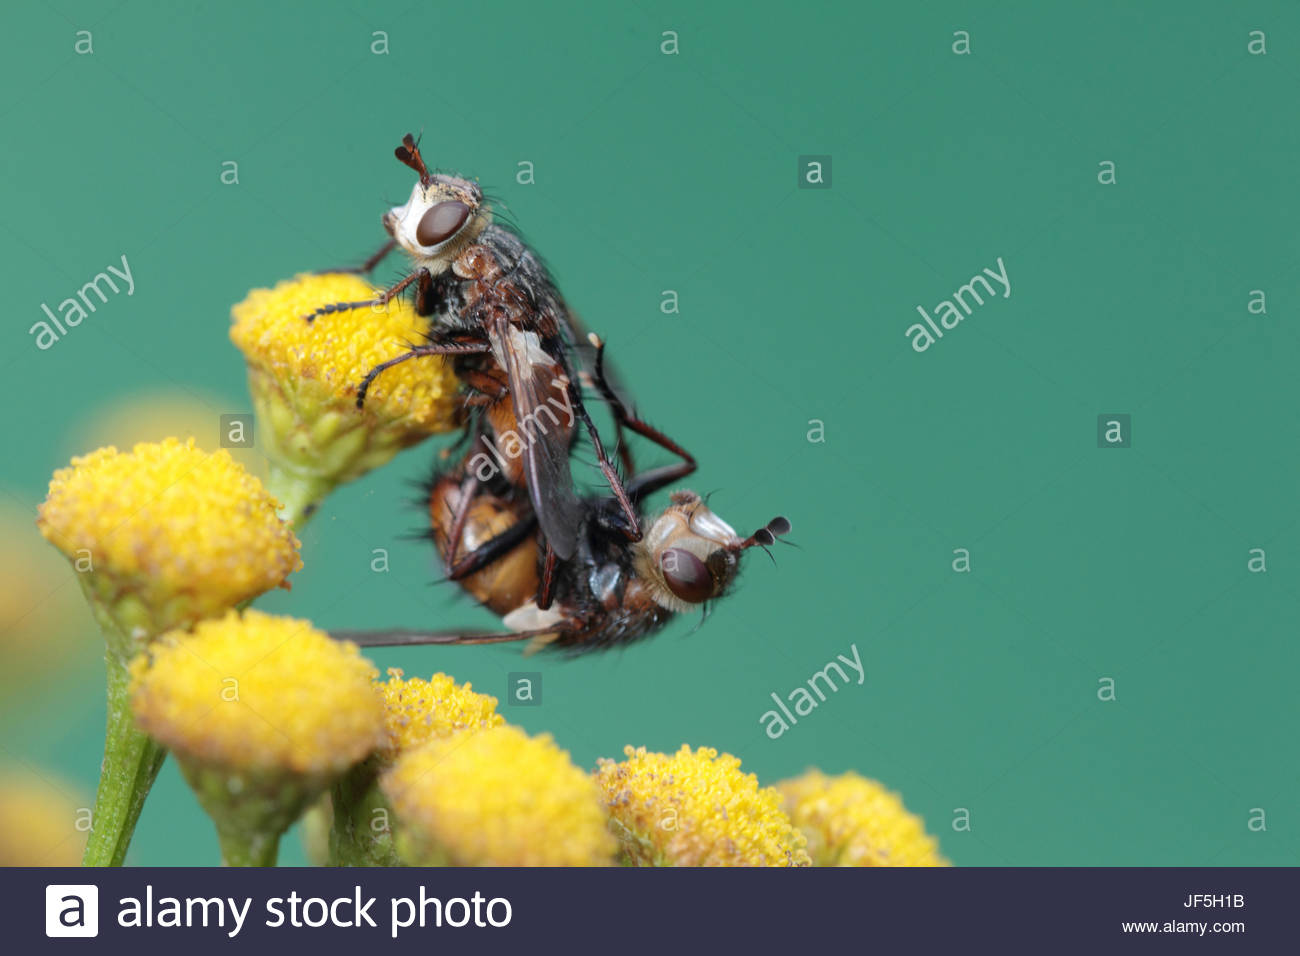 Two flies mating on a tansy flower, Tanacetum vulgare. - Stock Image